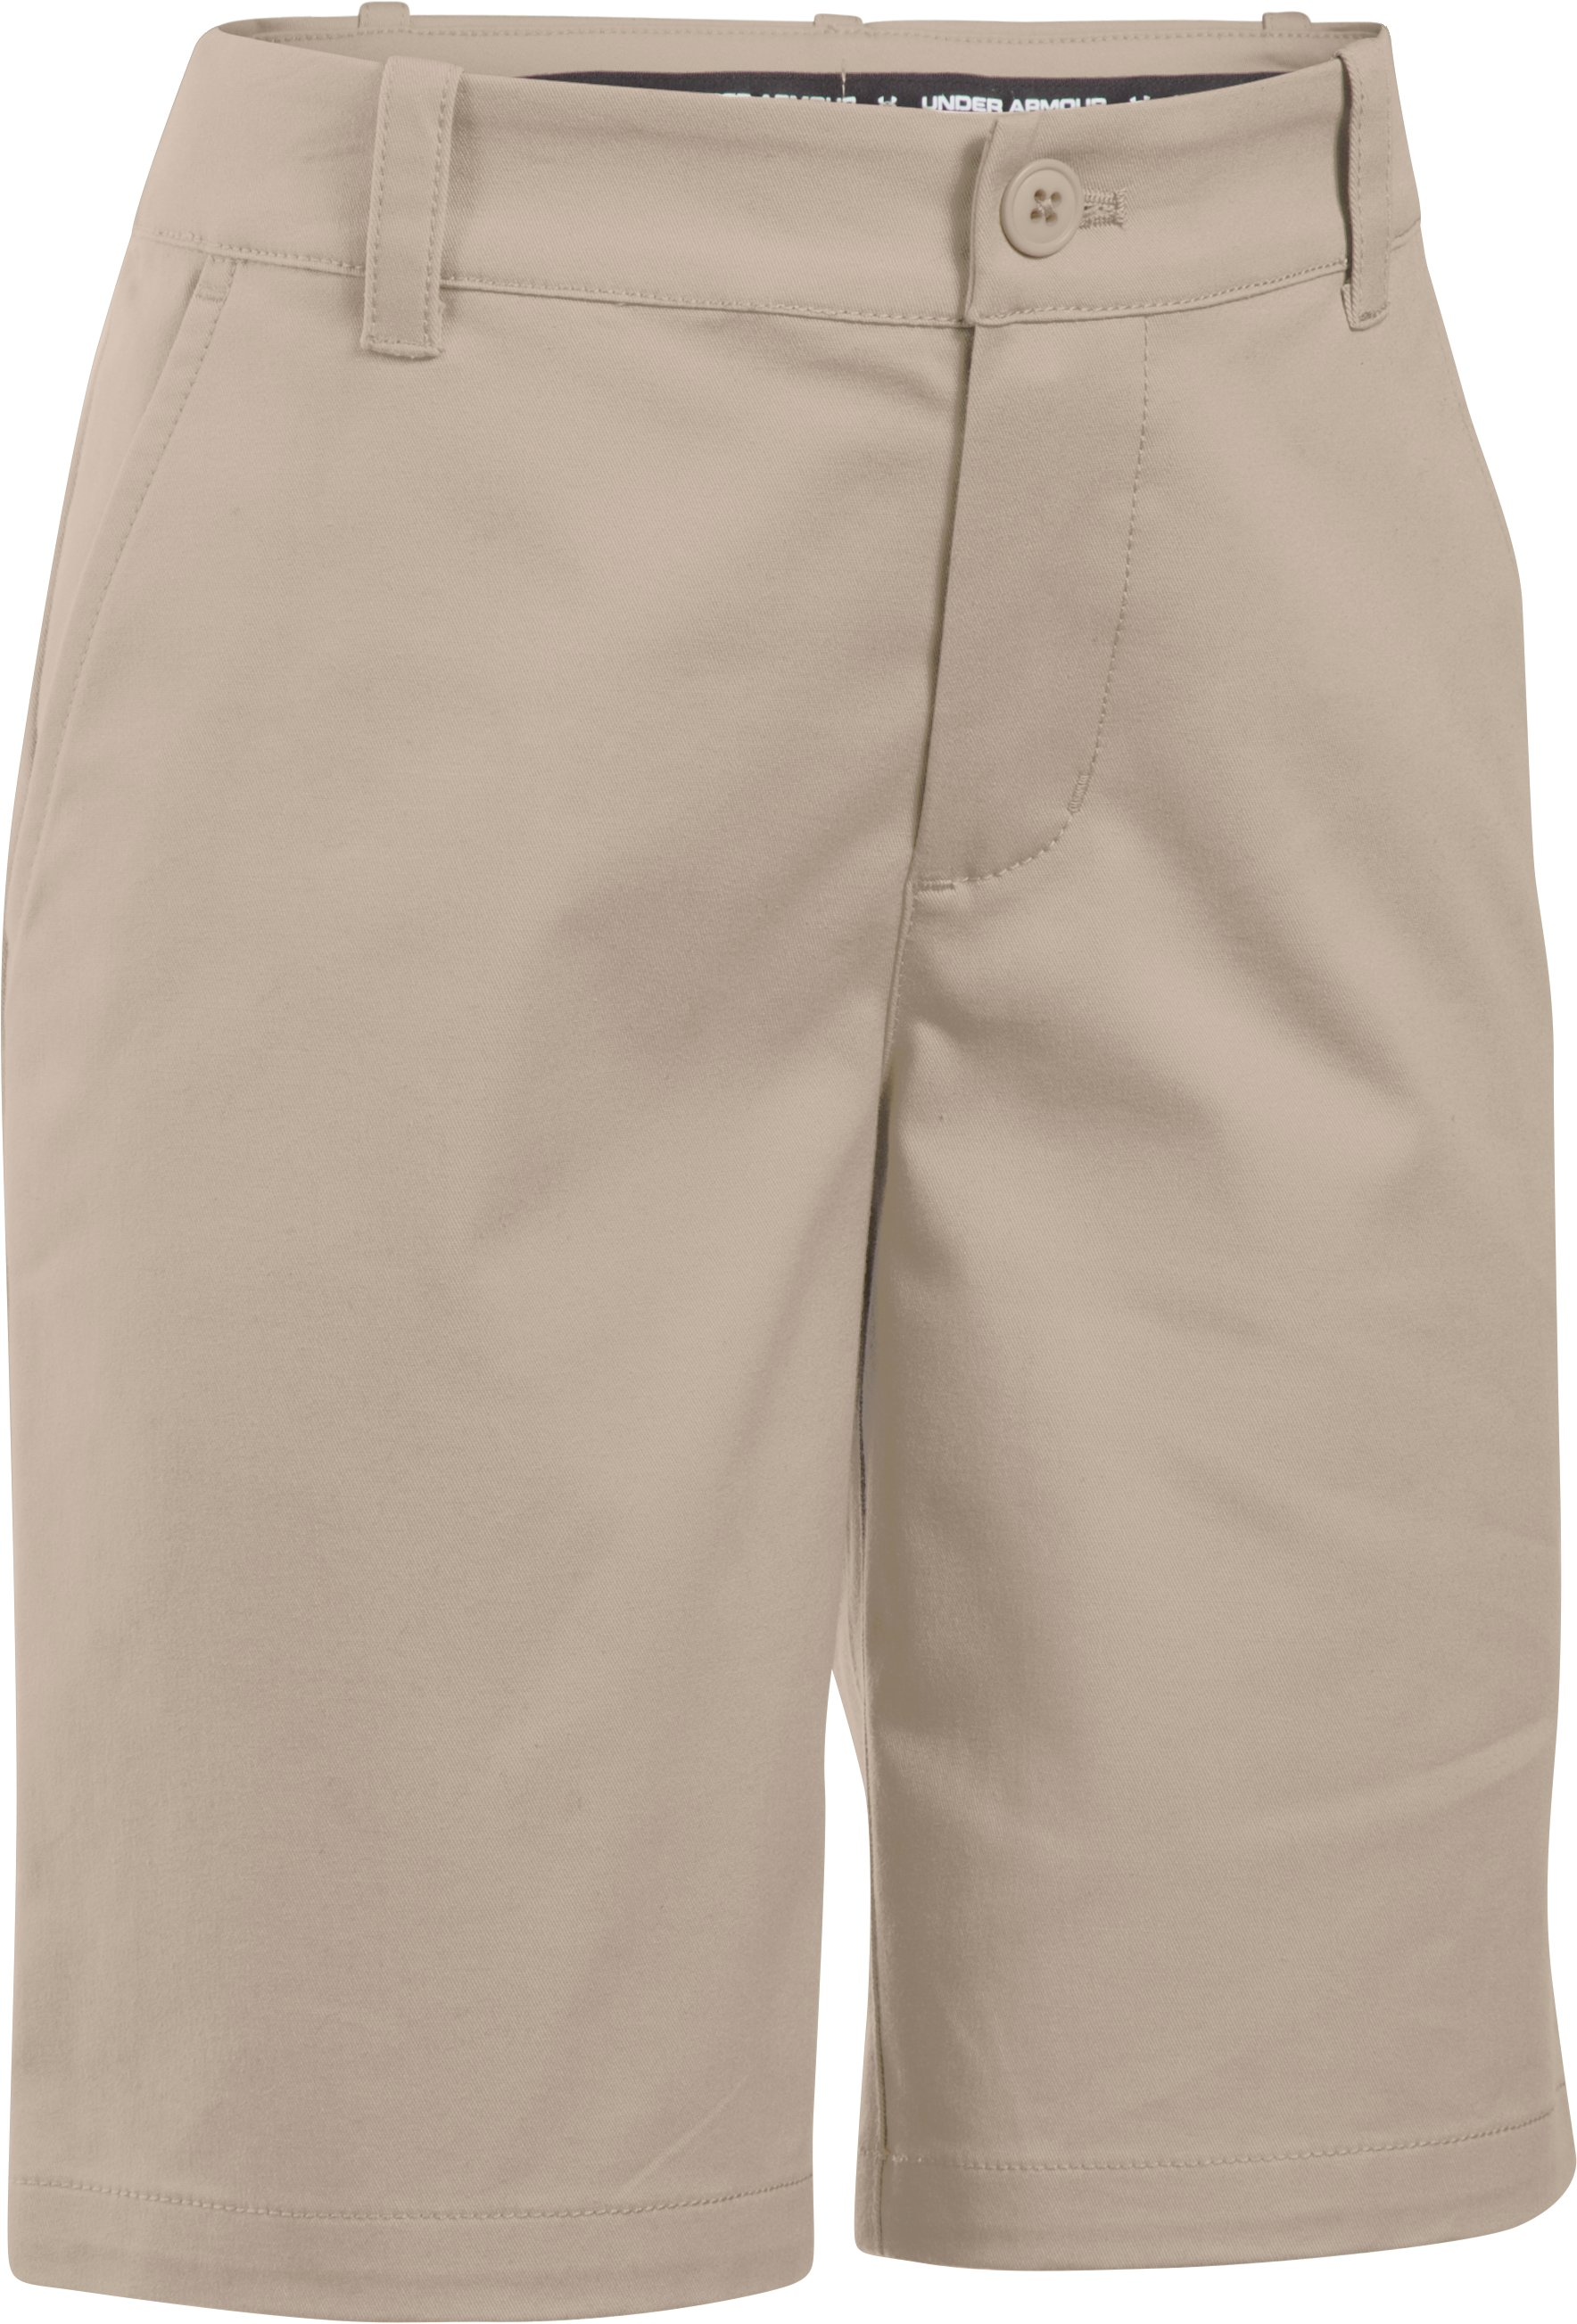 Girls' UA Uniform Chino Shorts – Plus Size, Desert Sand